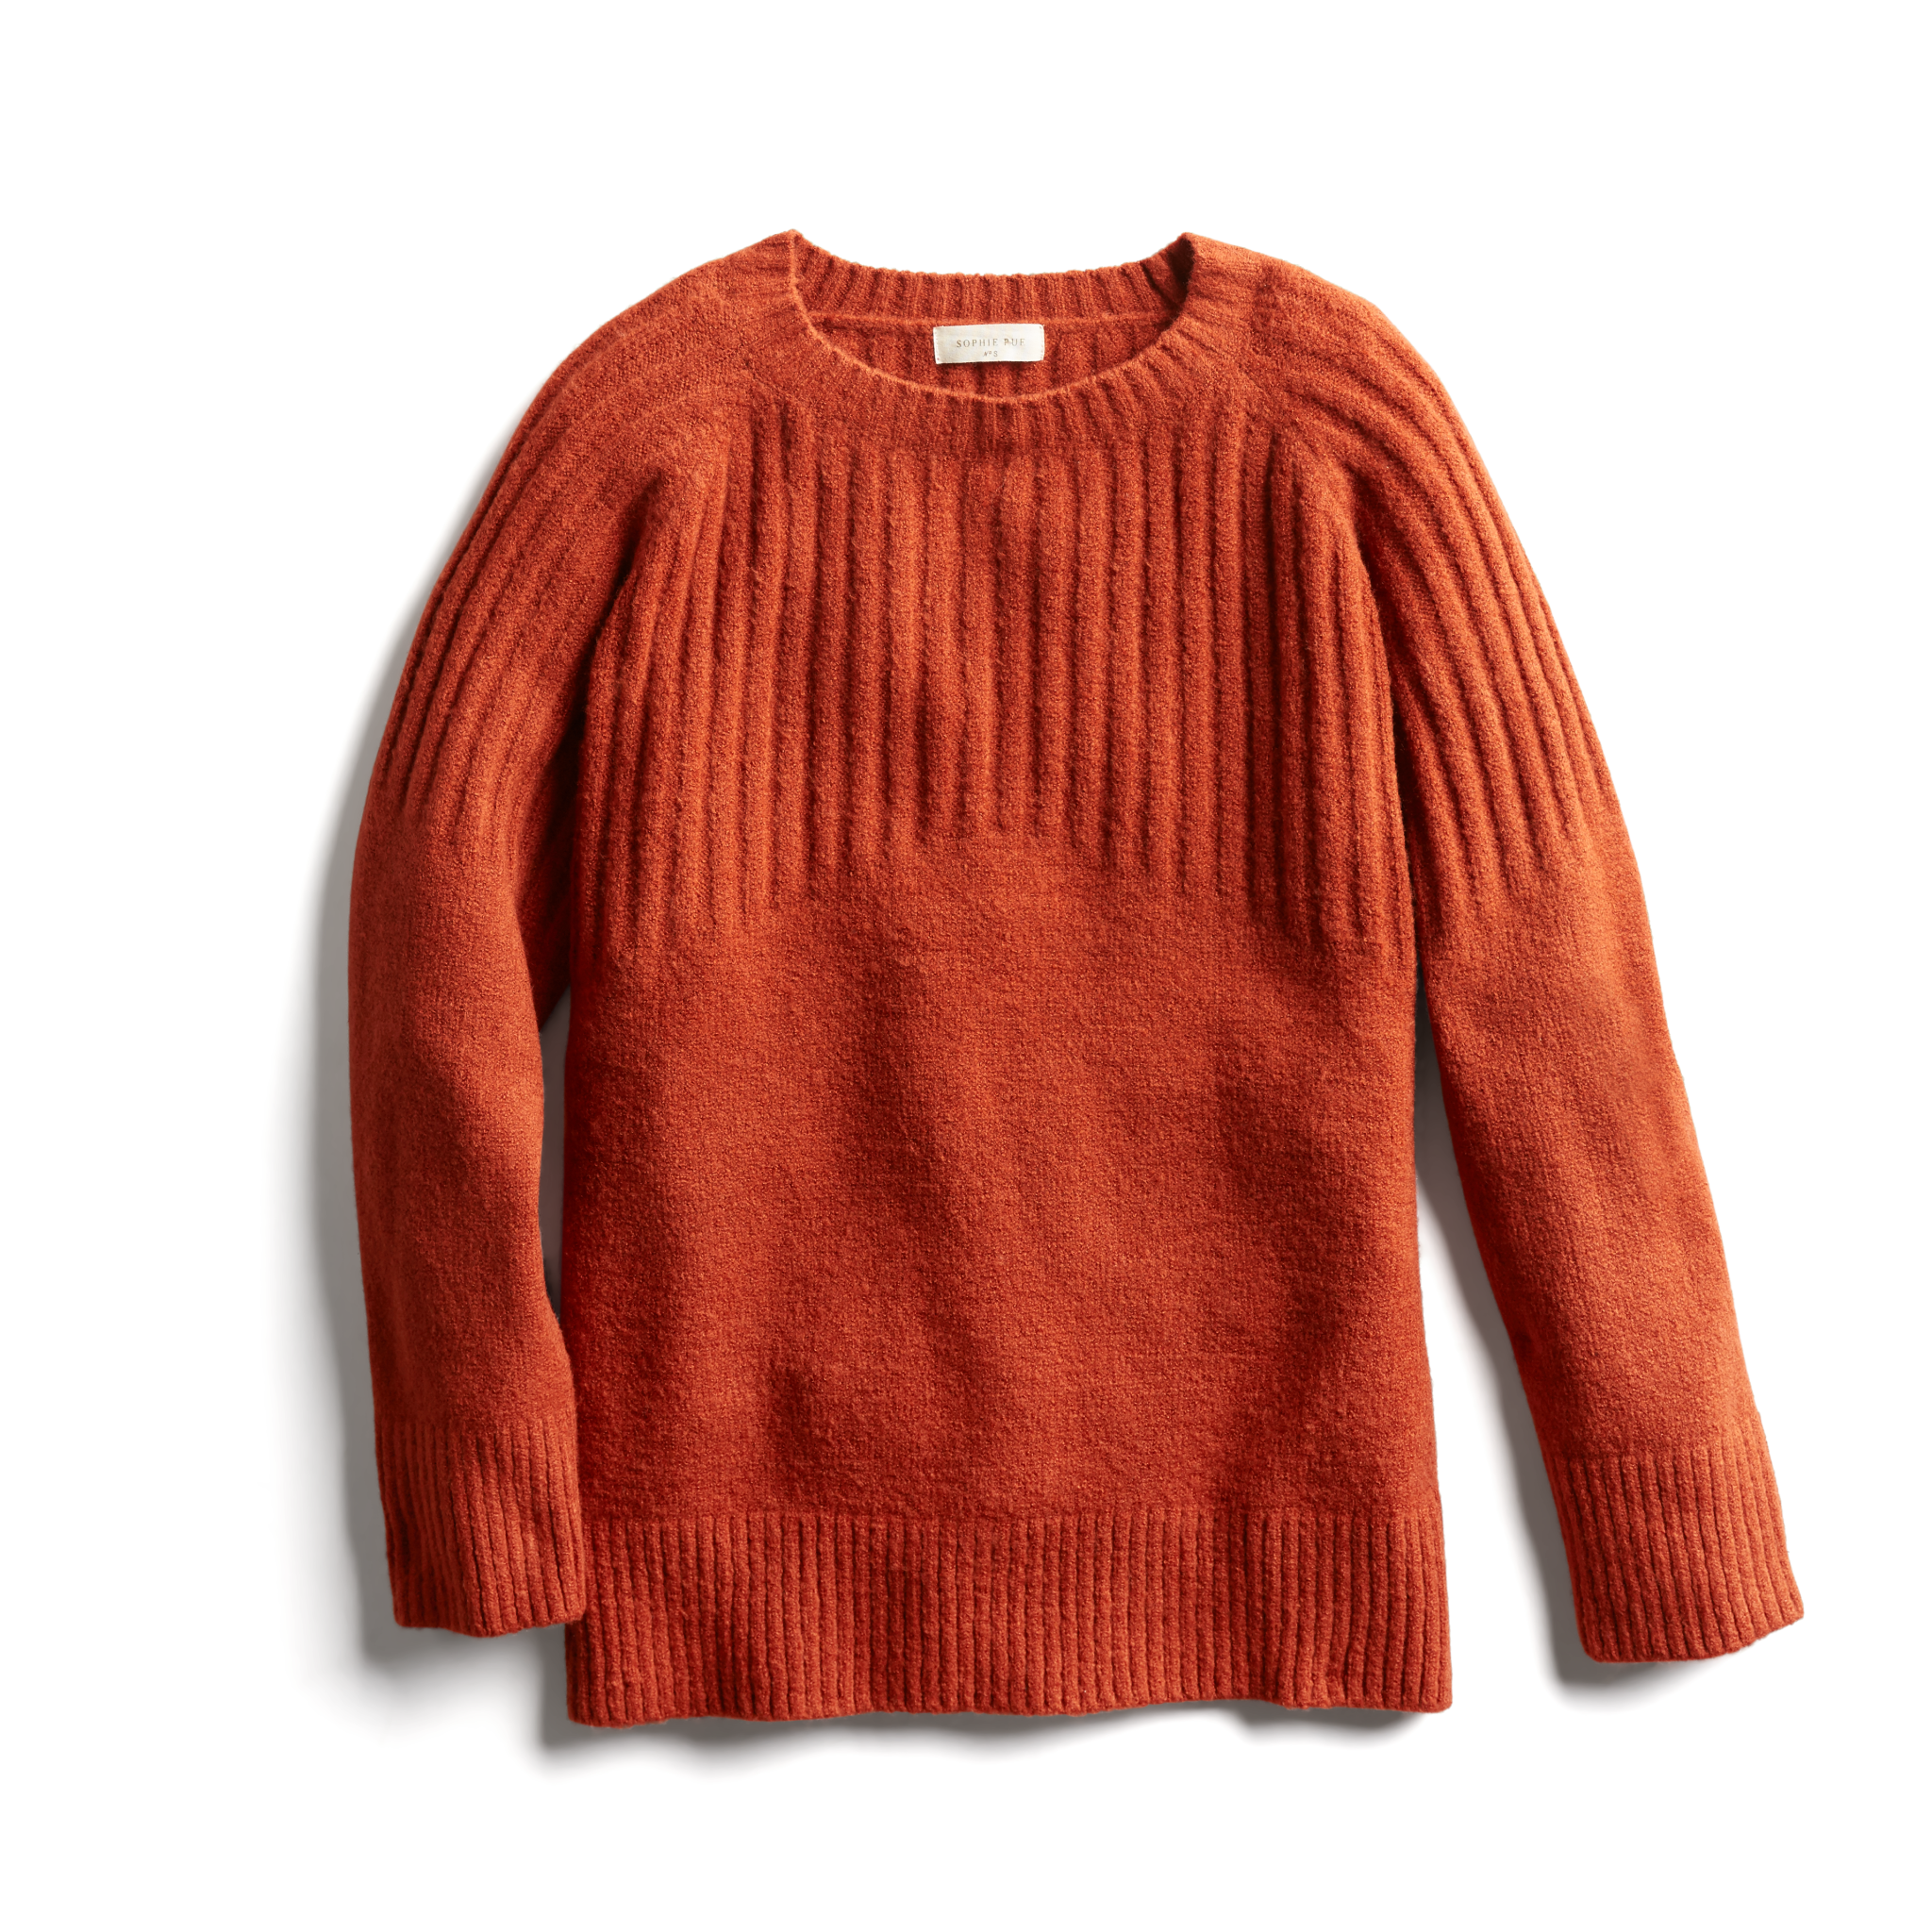 Stitch Fix Fall Stylist Picks: Chunky Orange Sweater | Stitch Fix ...